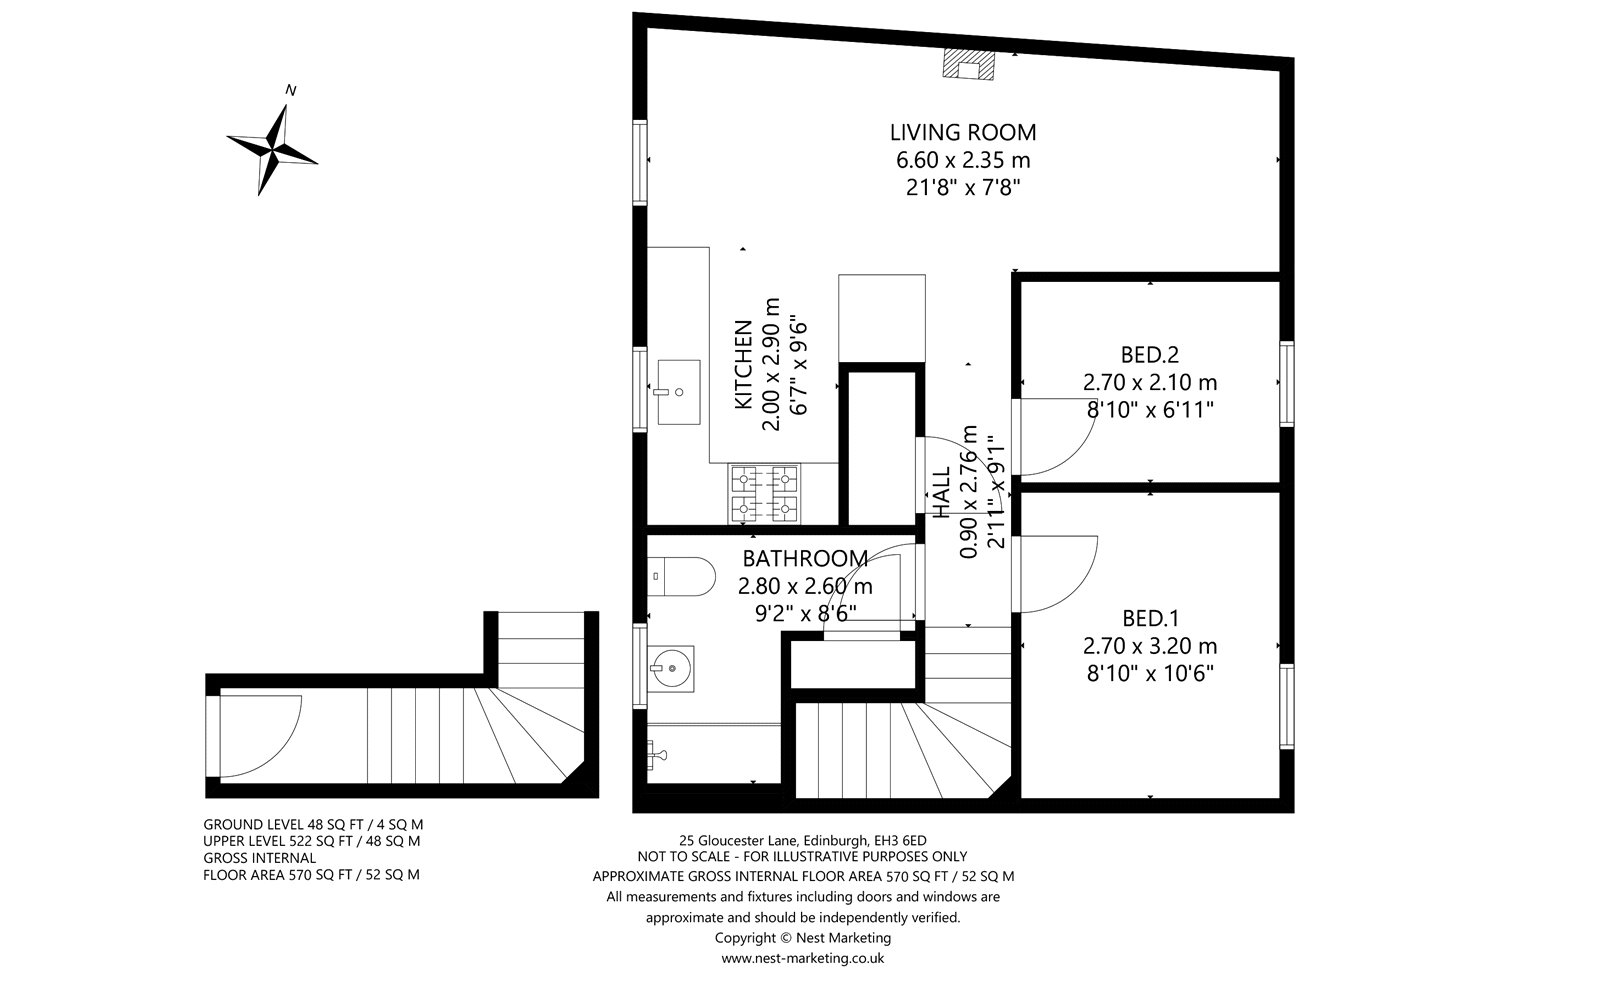 Floorplans for Gloucester Lane, Edinburgh, Midlothian, EH3